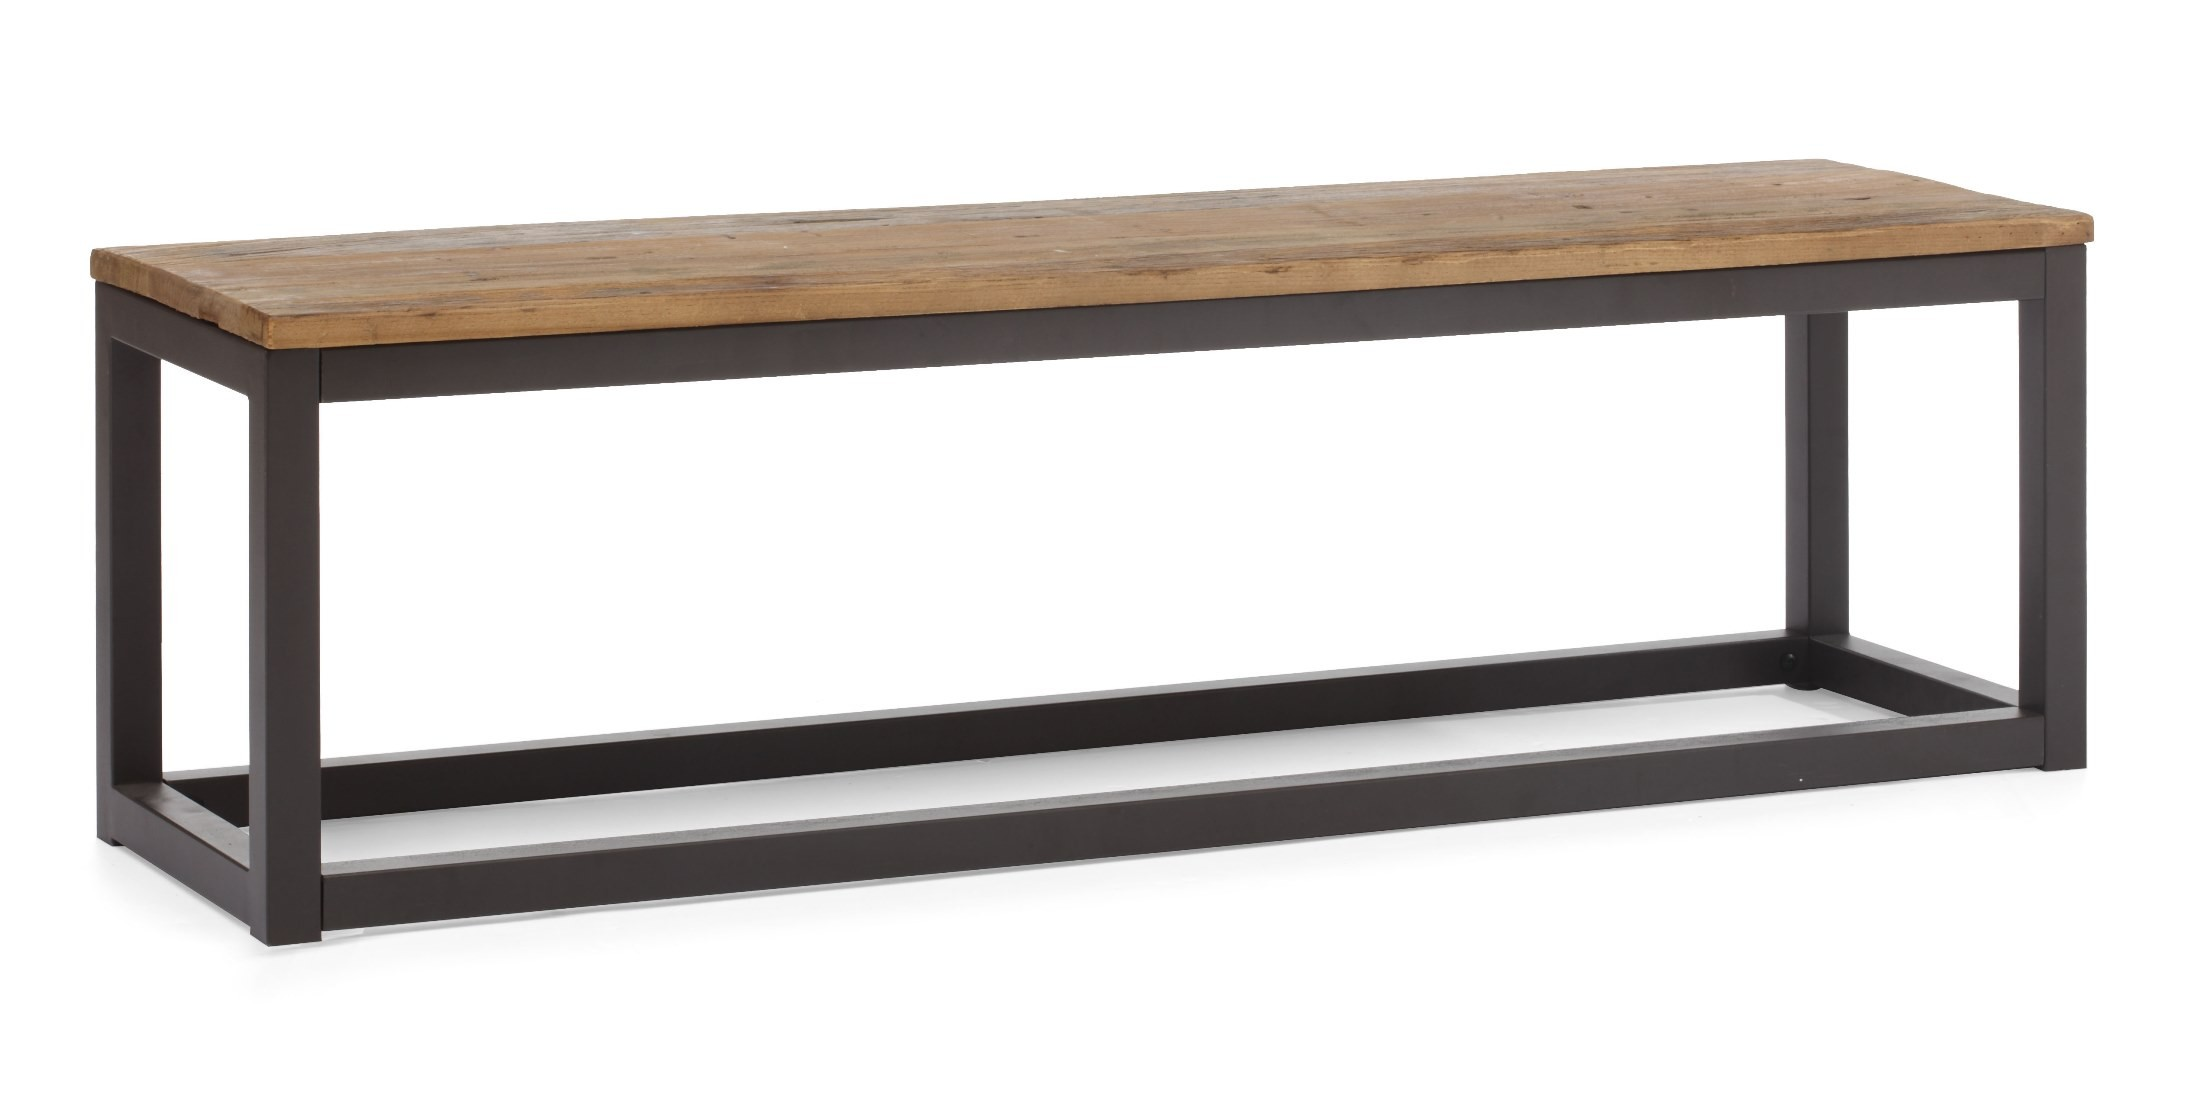 Civic Center Distressed Natural Bench From Zuo Mod 98124 Coleman Furniture